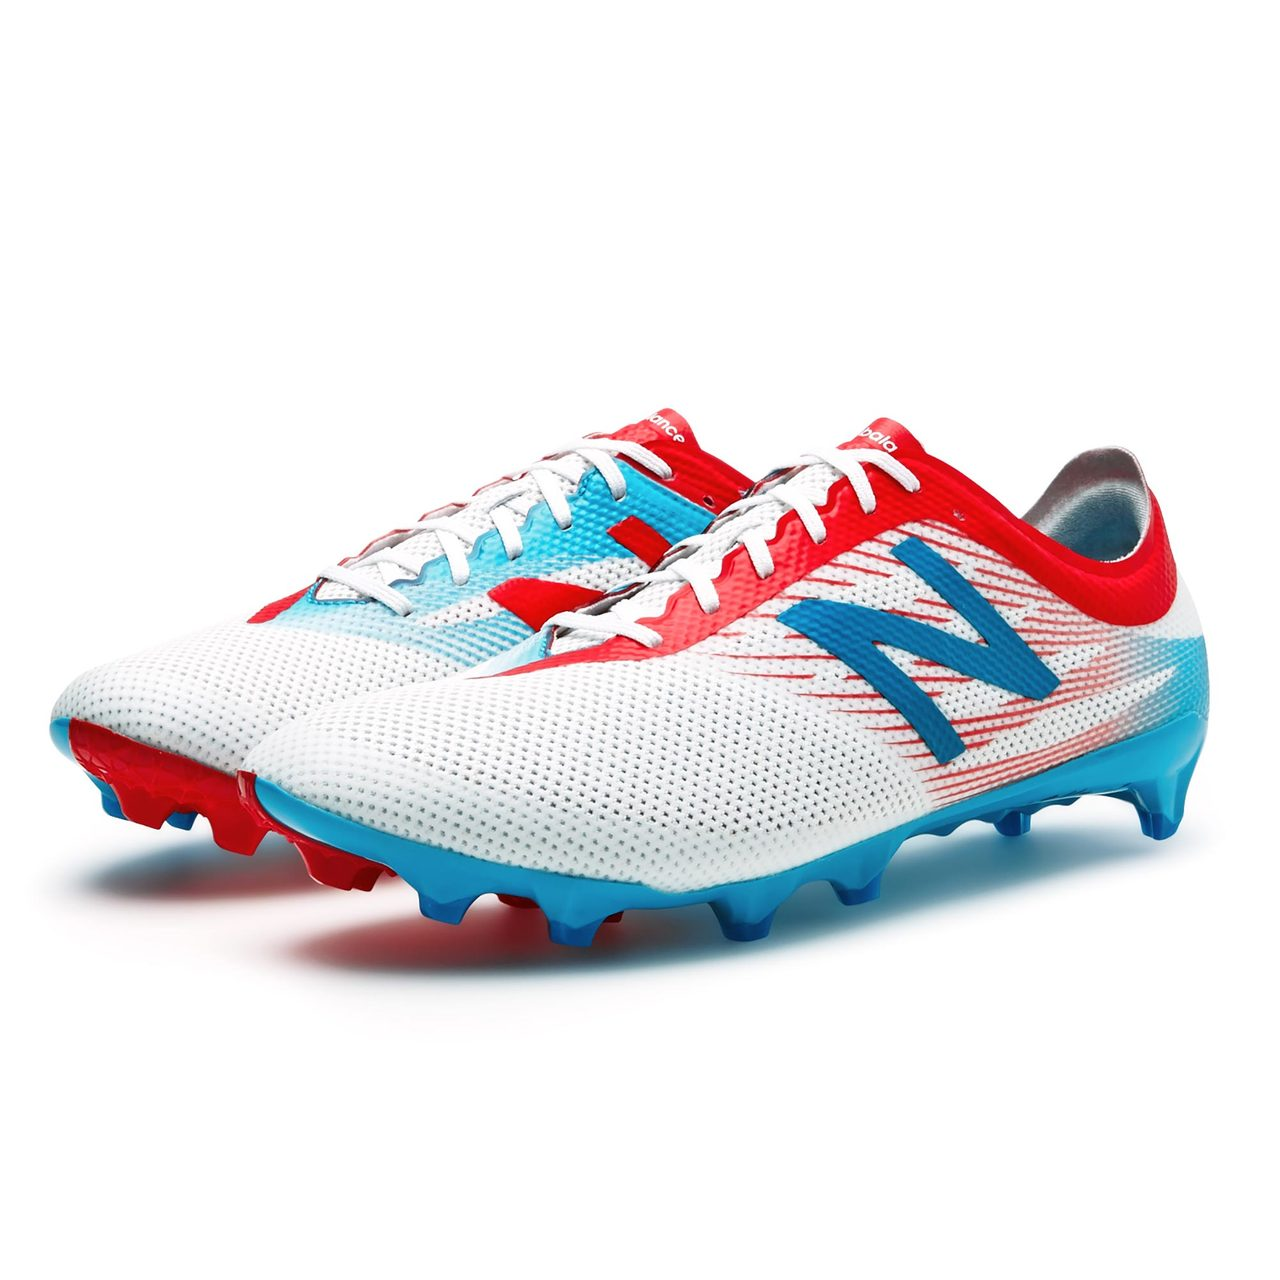 54f207de03332 Buy new balance furon pro fg > OFF64% Discounted